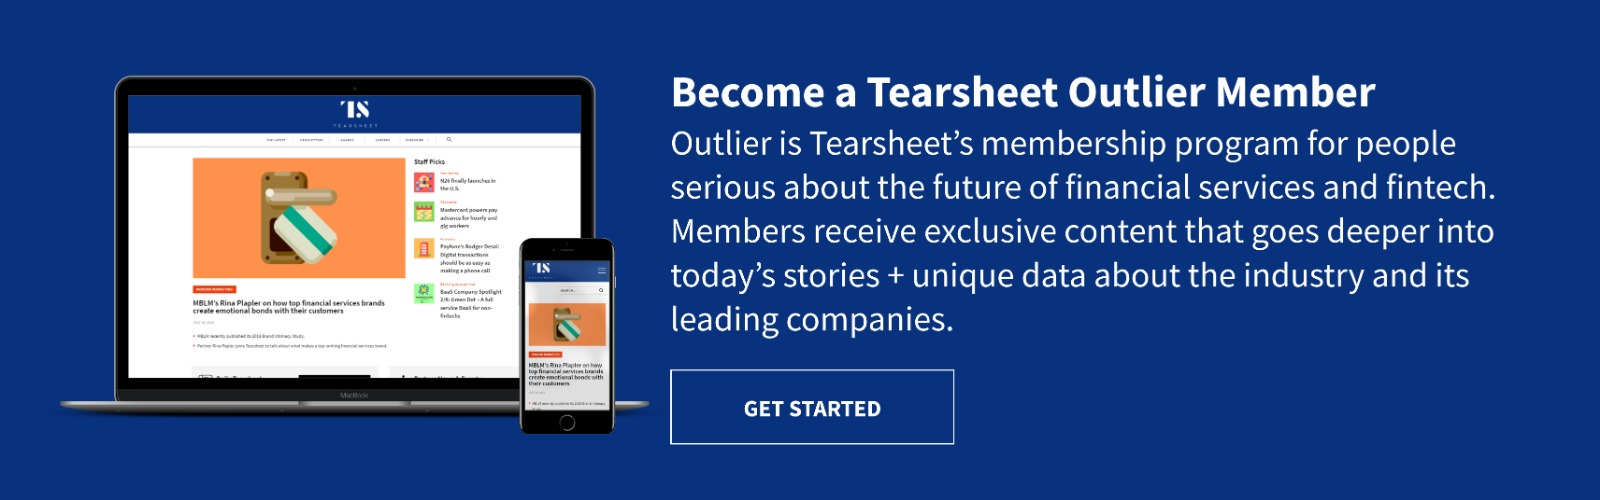 Tearsheet Outlier information and signup